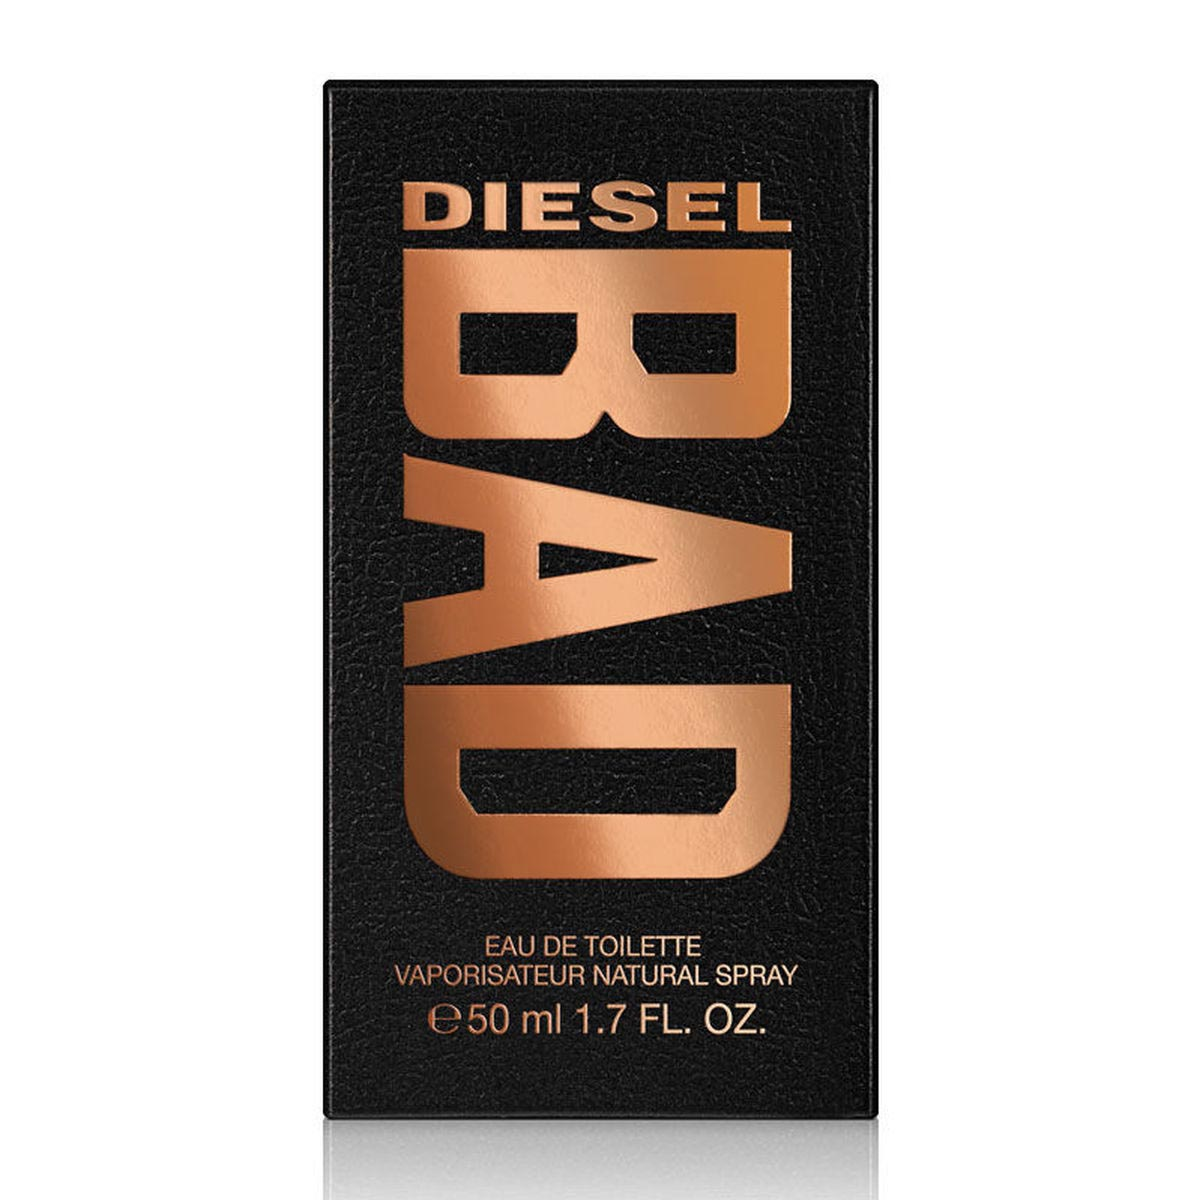 Diesel bad eau de toilette 75ml vaporizador